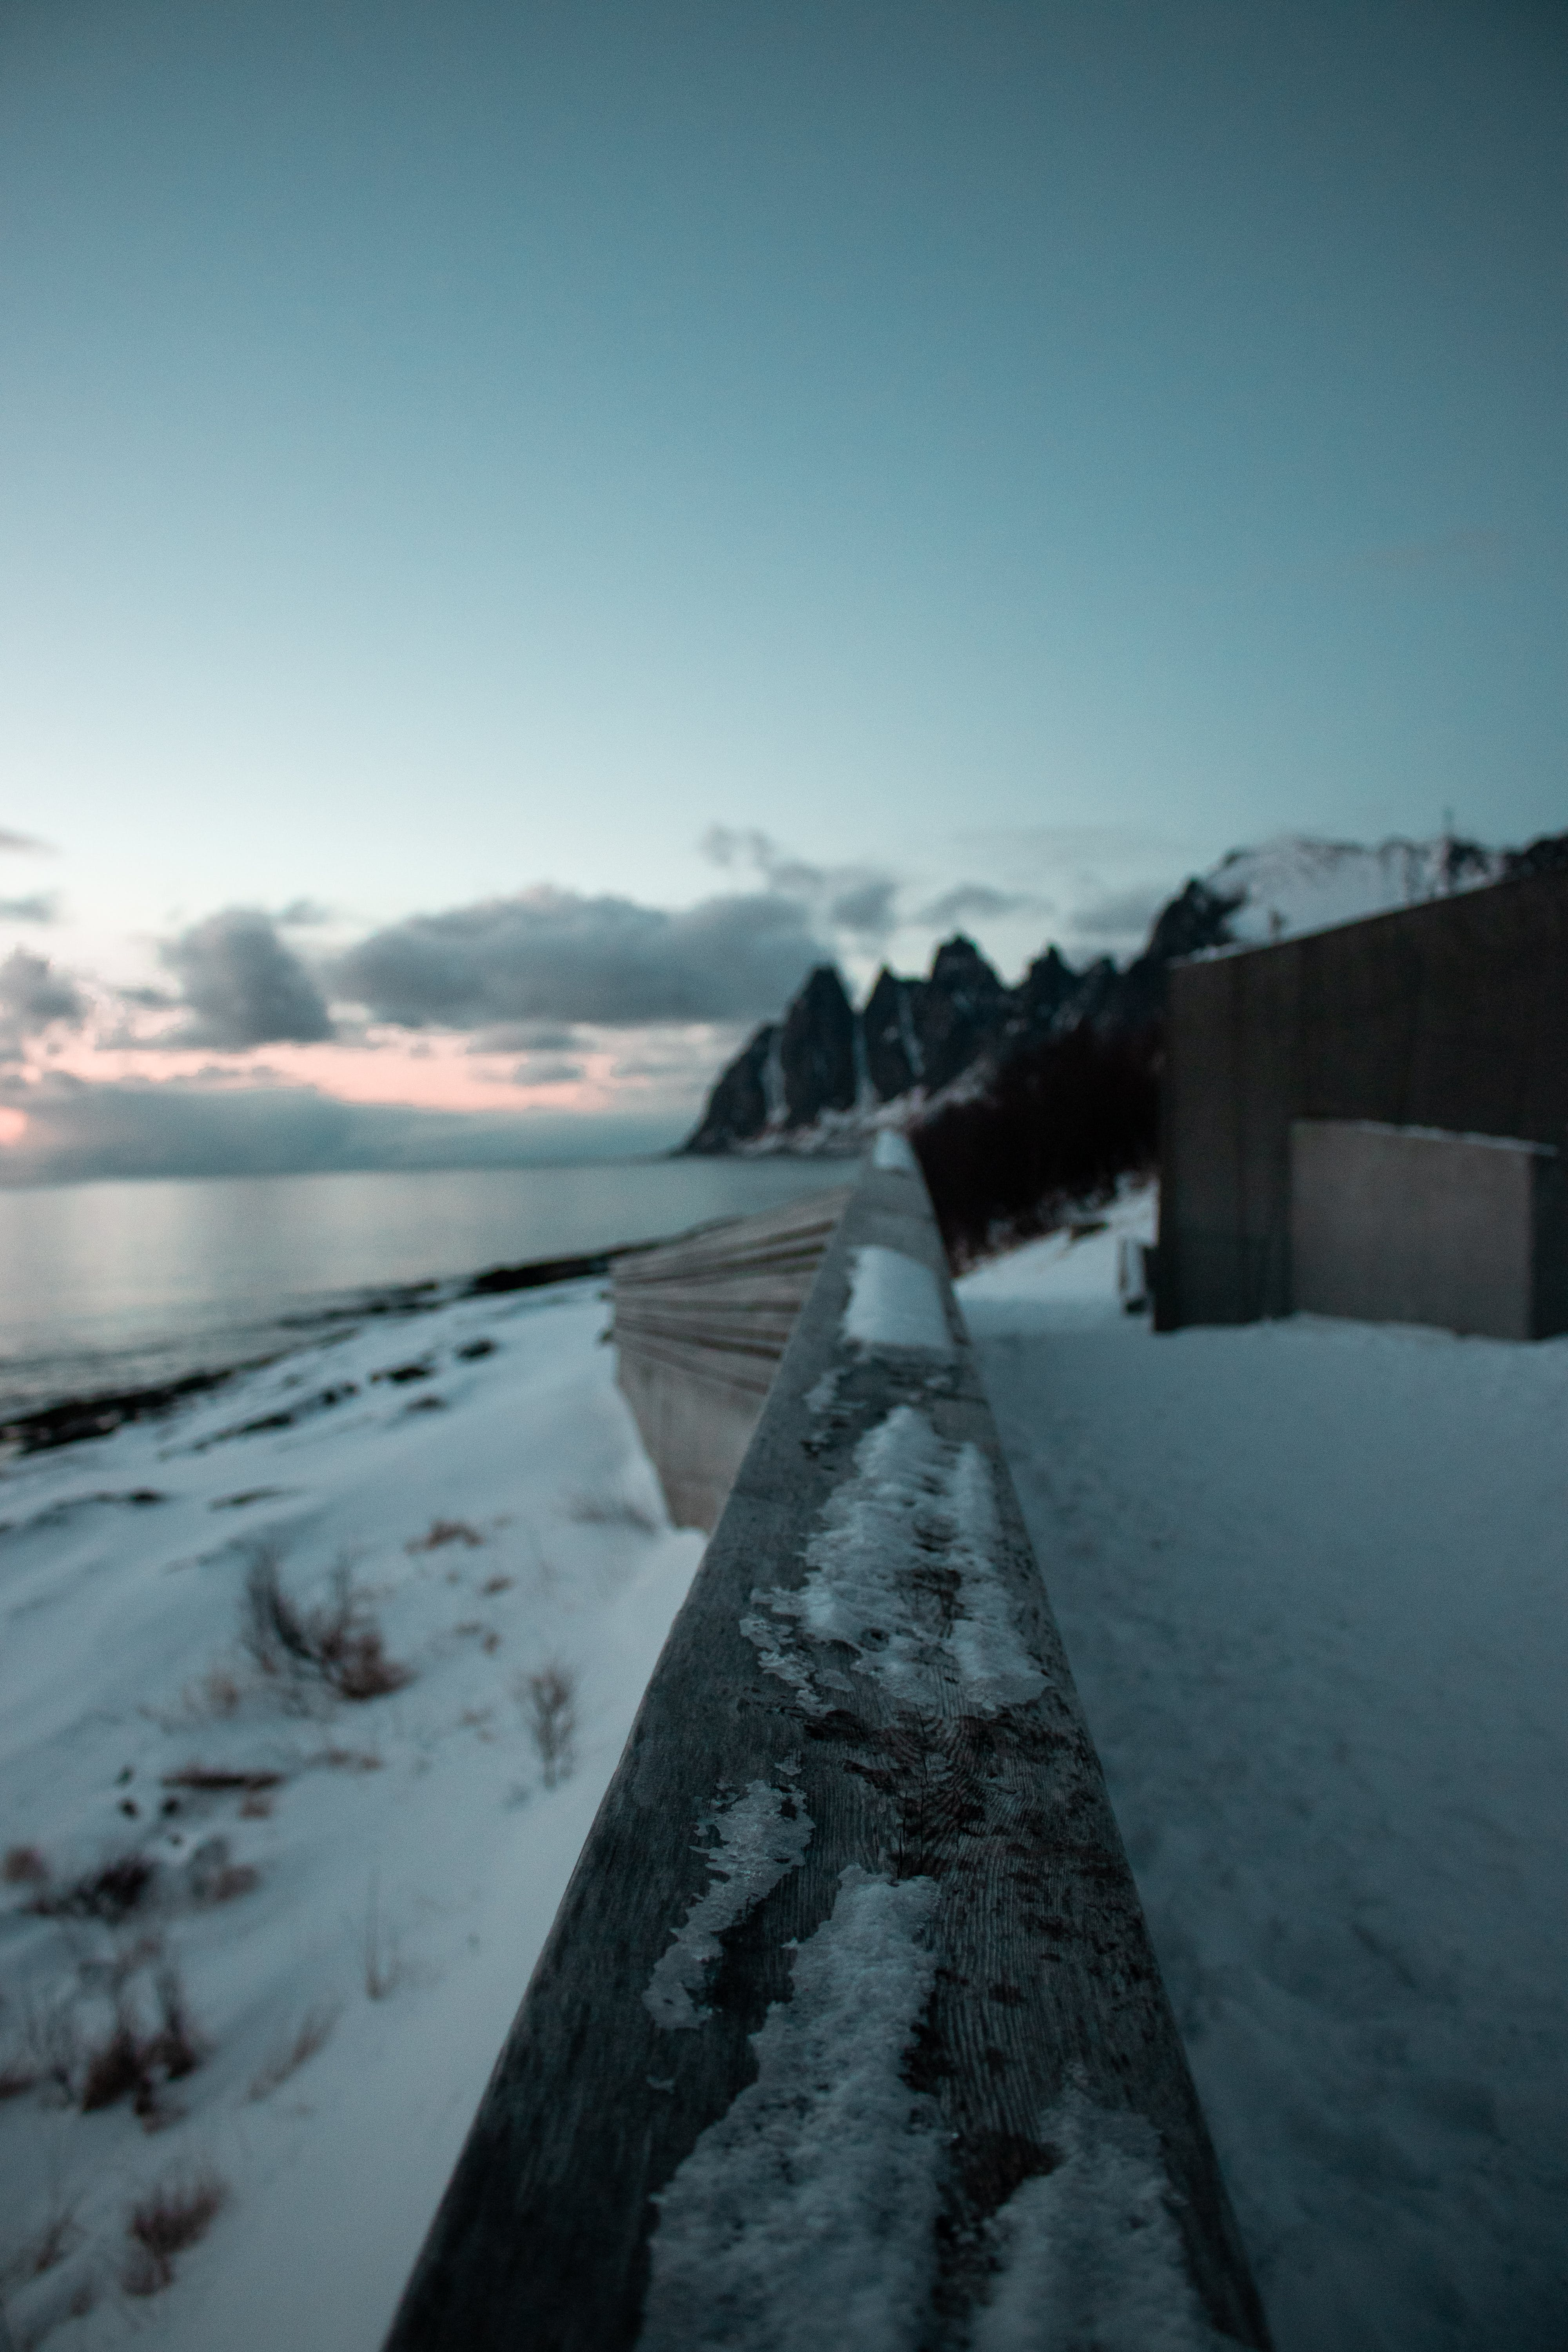 Brown and Gray Wall Surrounded by Snow Near Body of Water